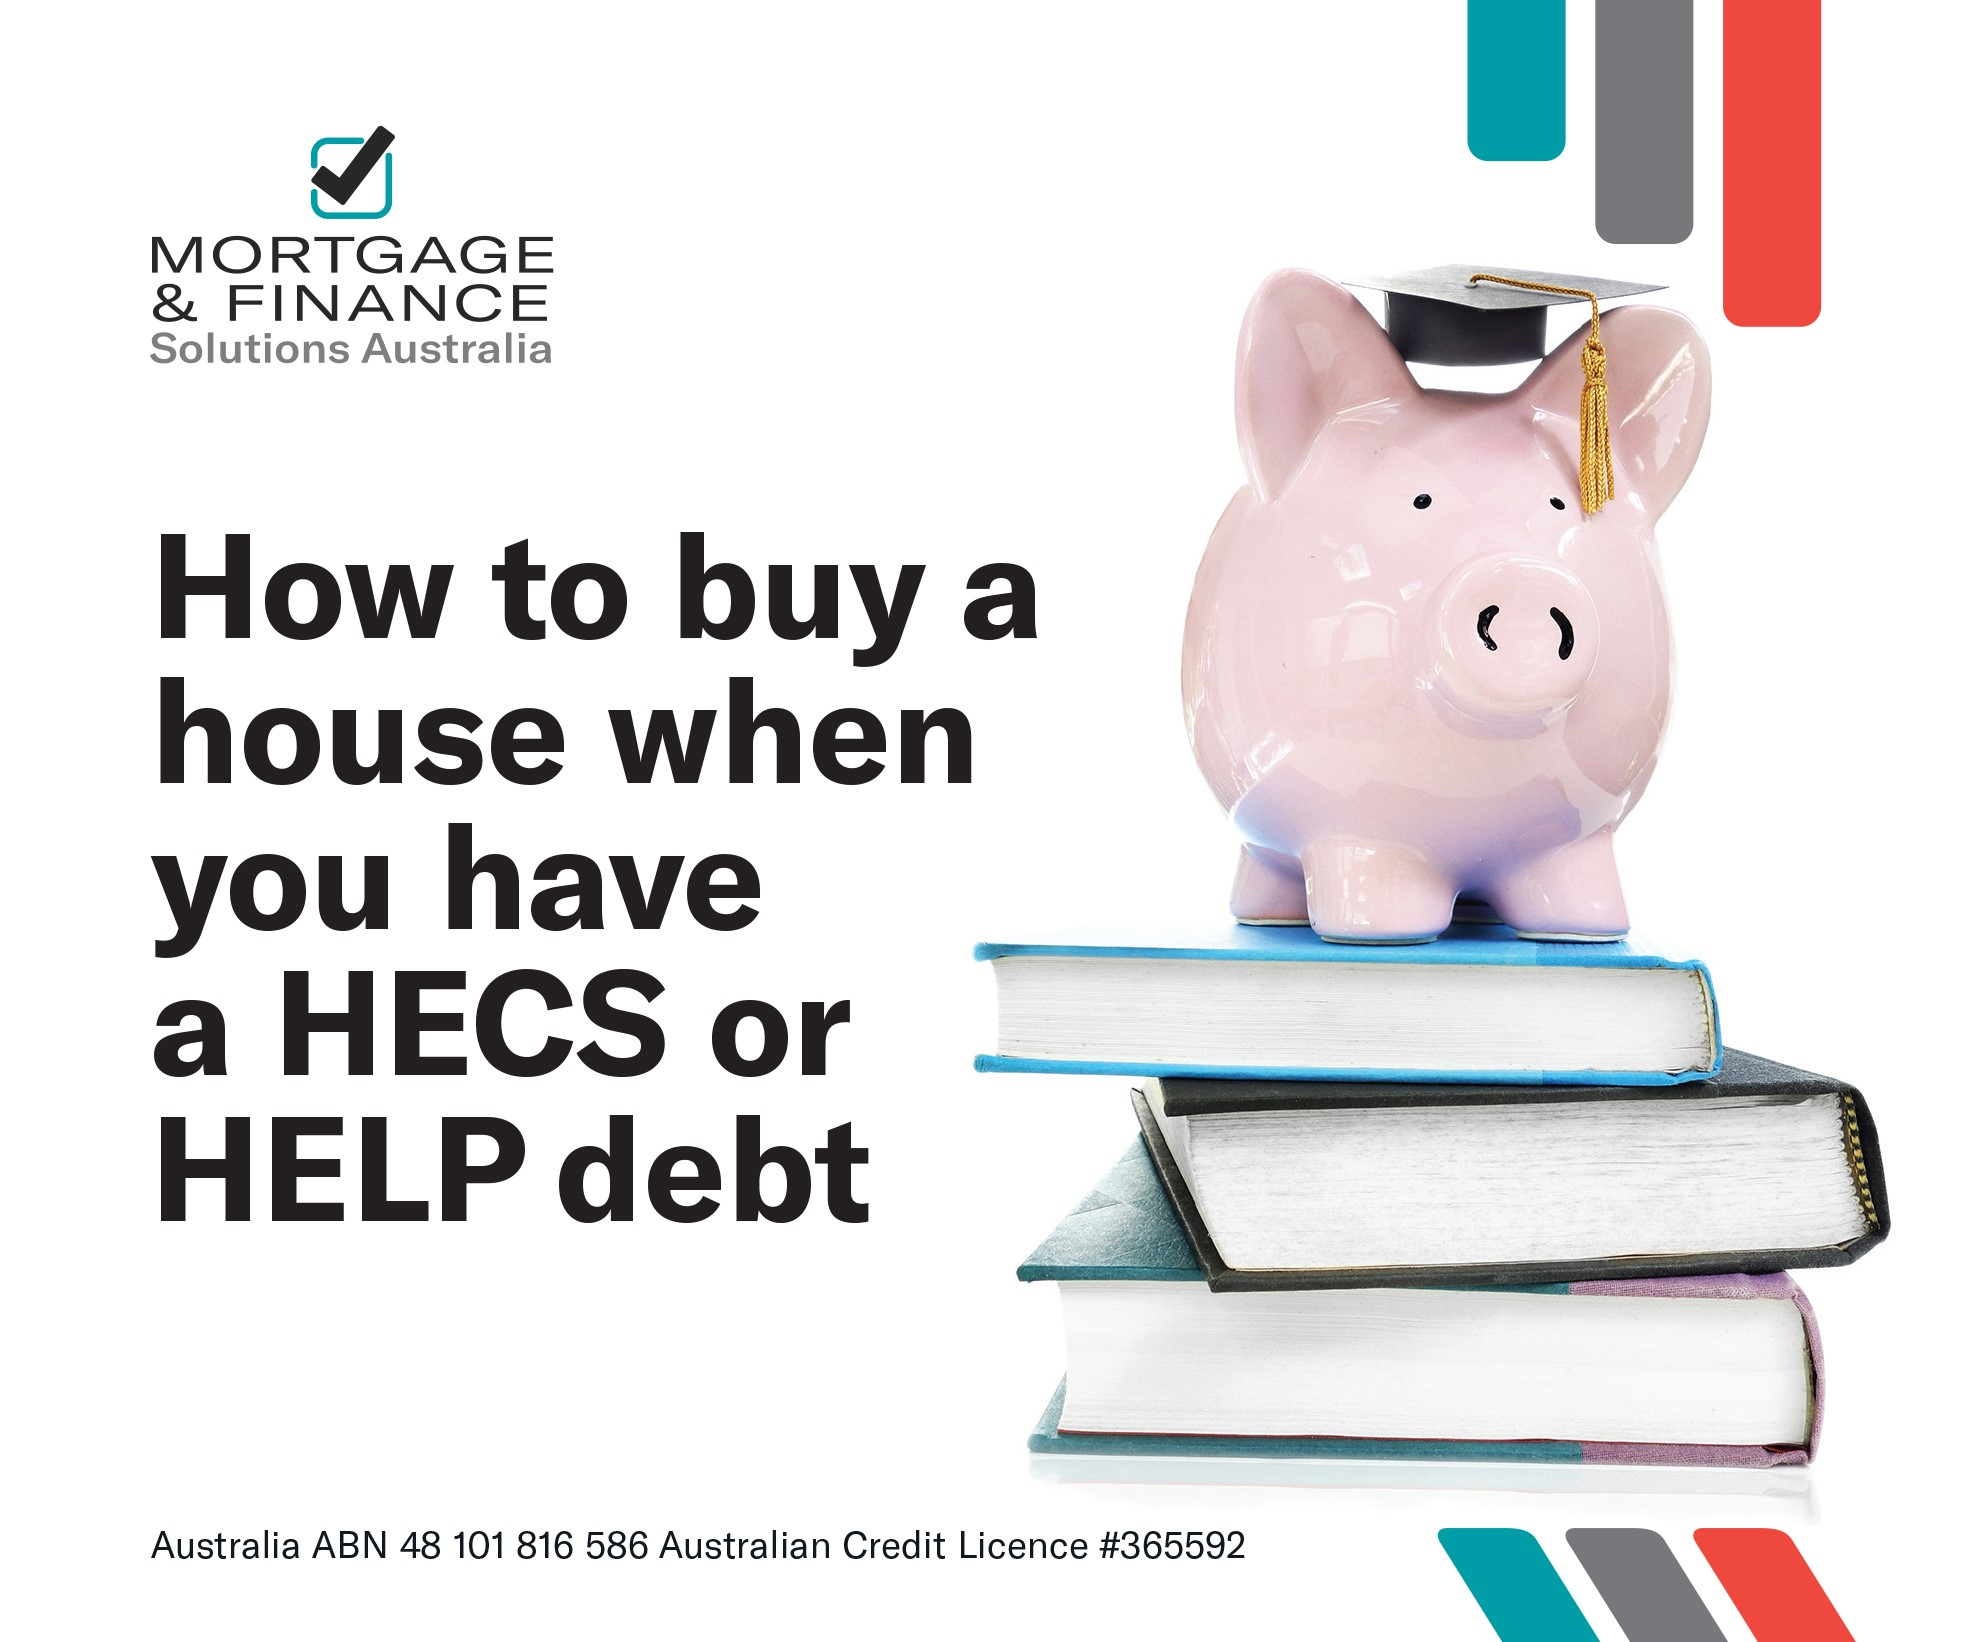 How to buy a house when you have a HECS or HELP debt